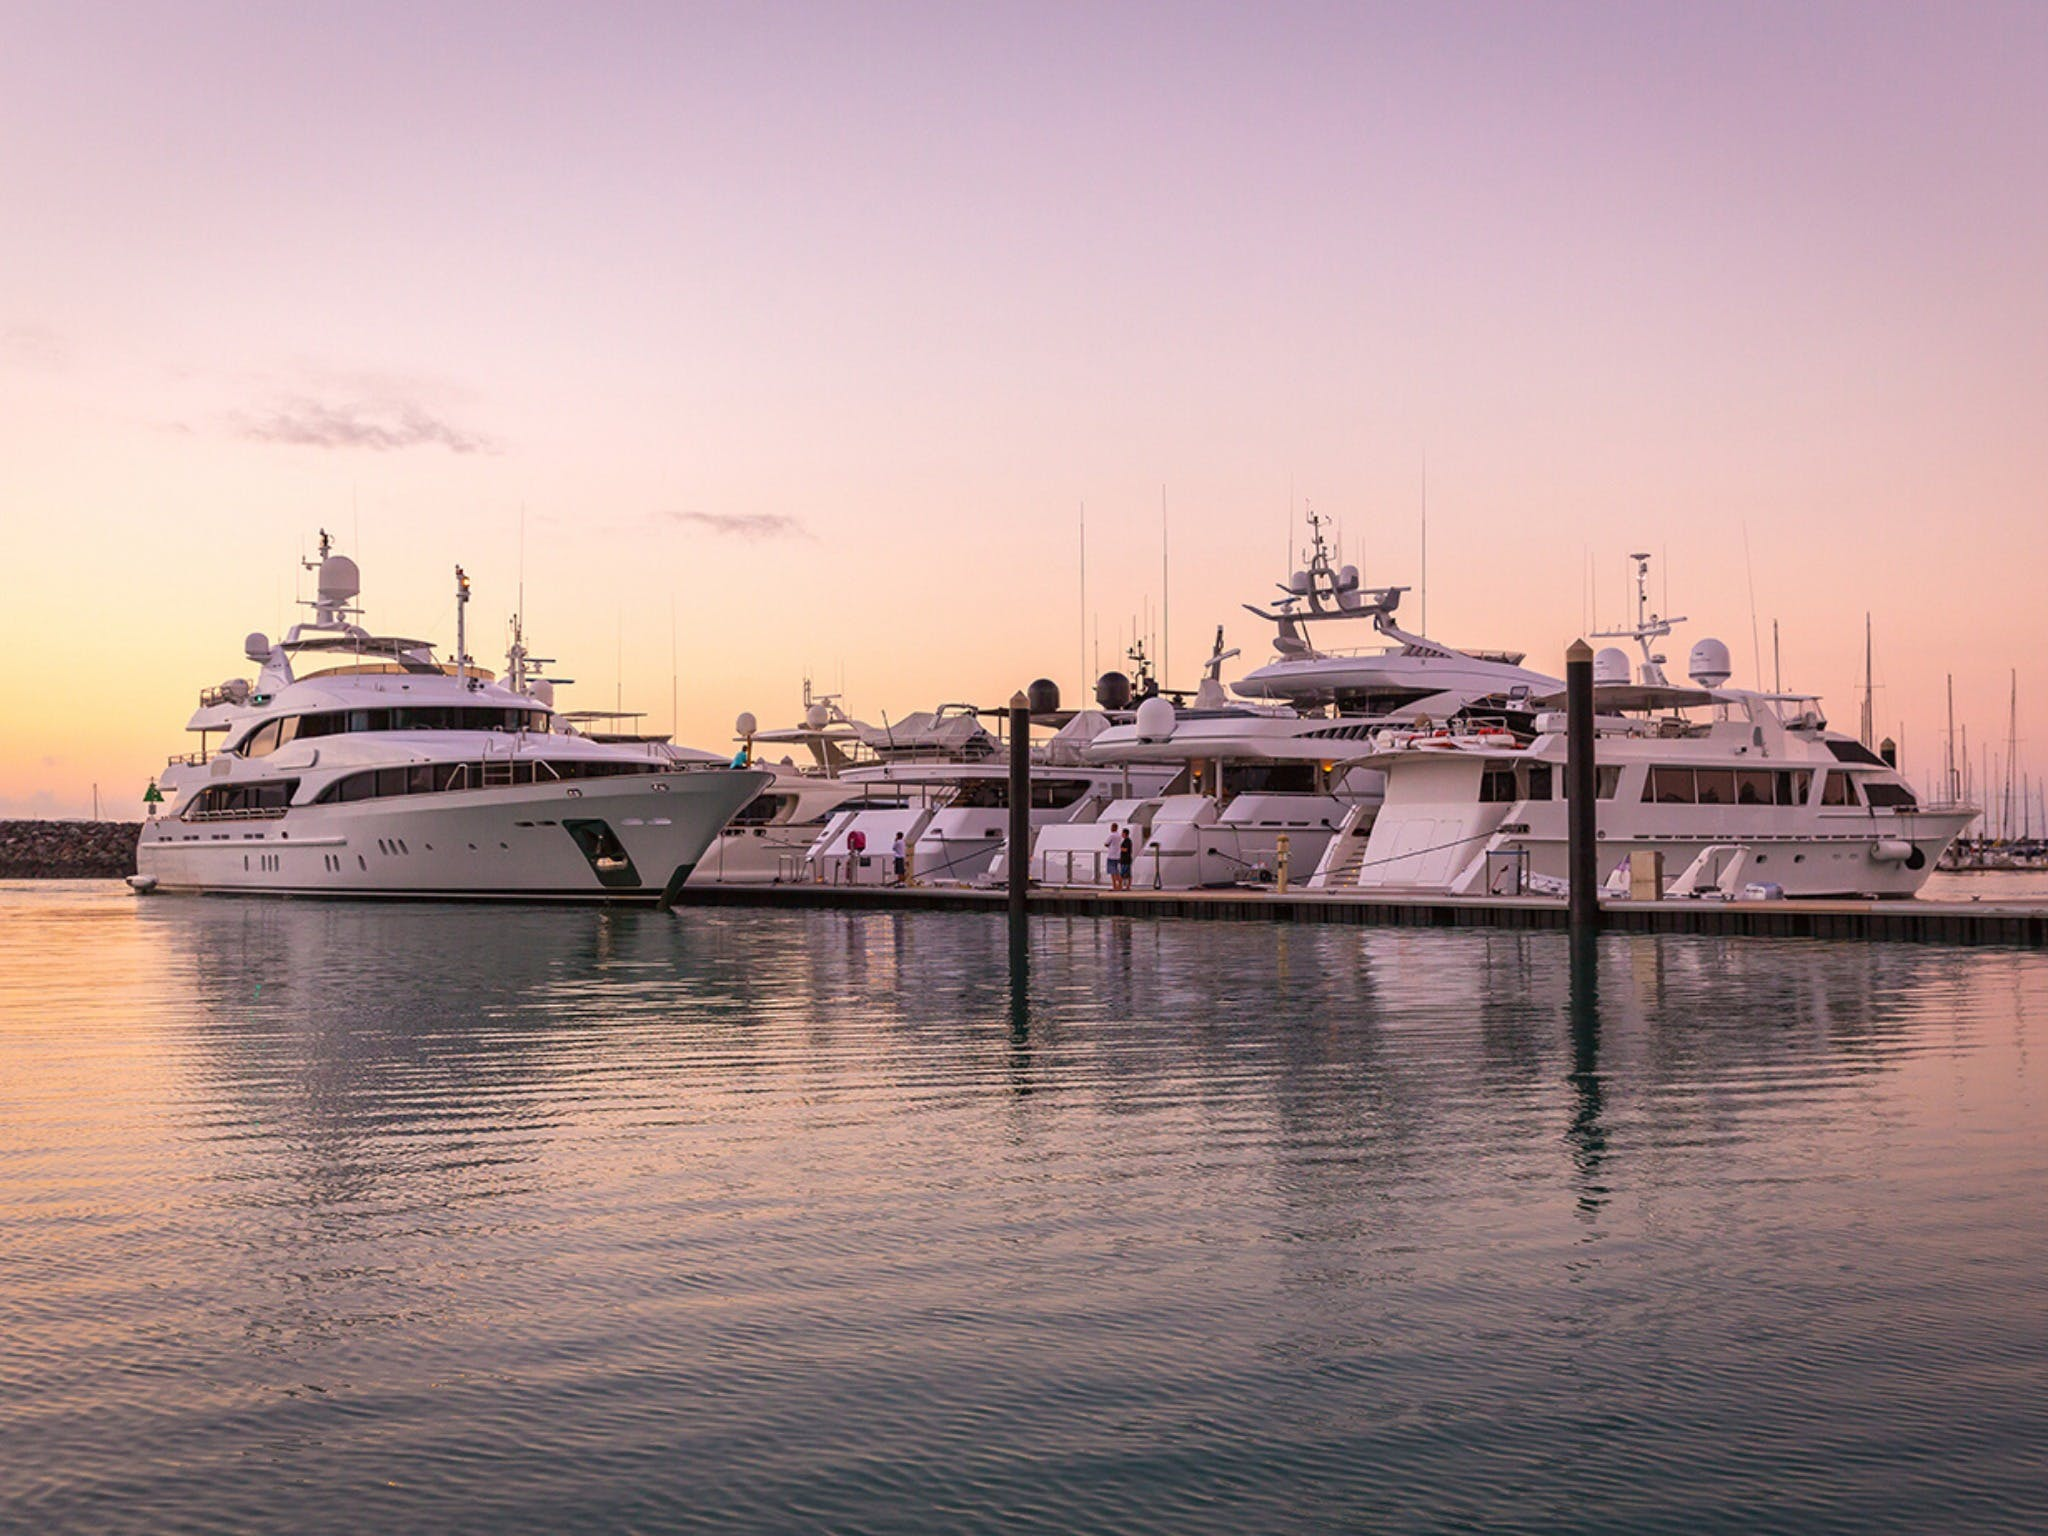 Australian Superyacht Rendezvous - Great Barrier Reef edition - Surfers Gold Coast